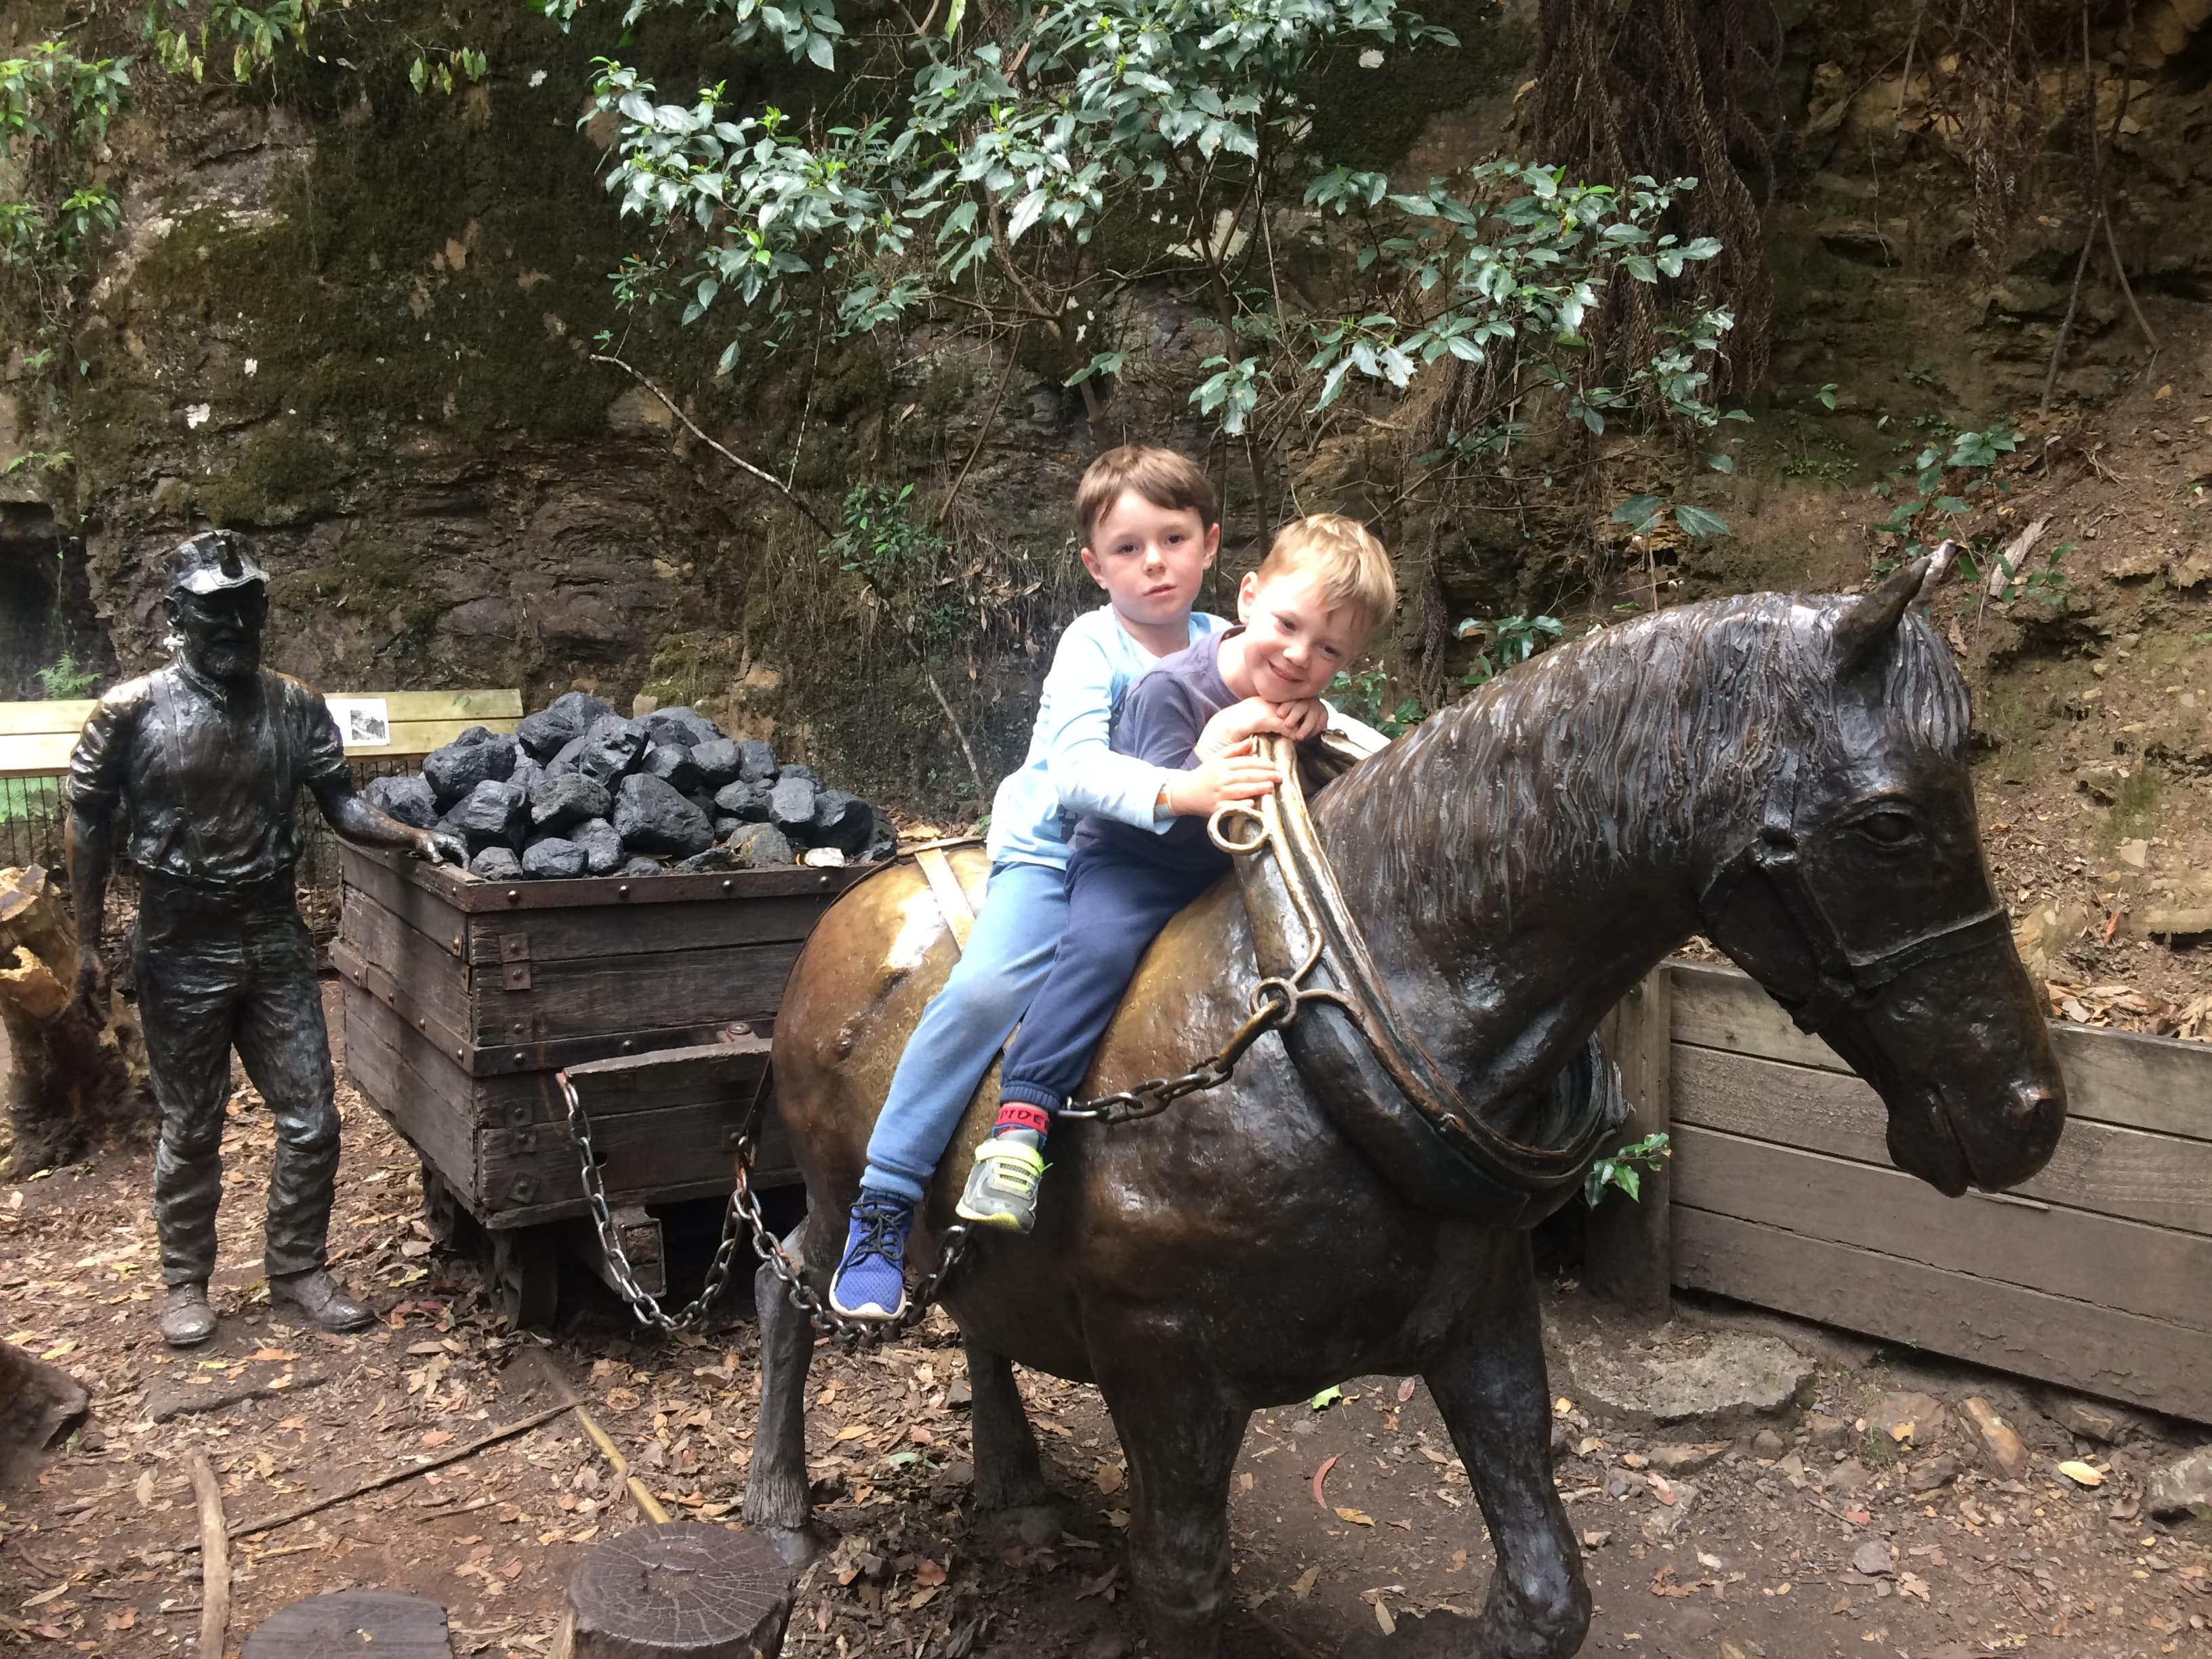 Our boys on a bronze horse at Scenic World Blue Mountains Scenic World Blue Mountains - Scenic Skyway